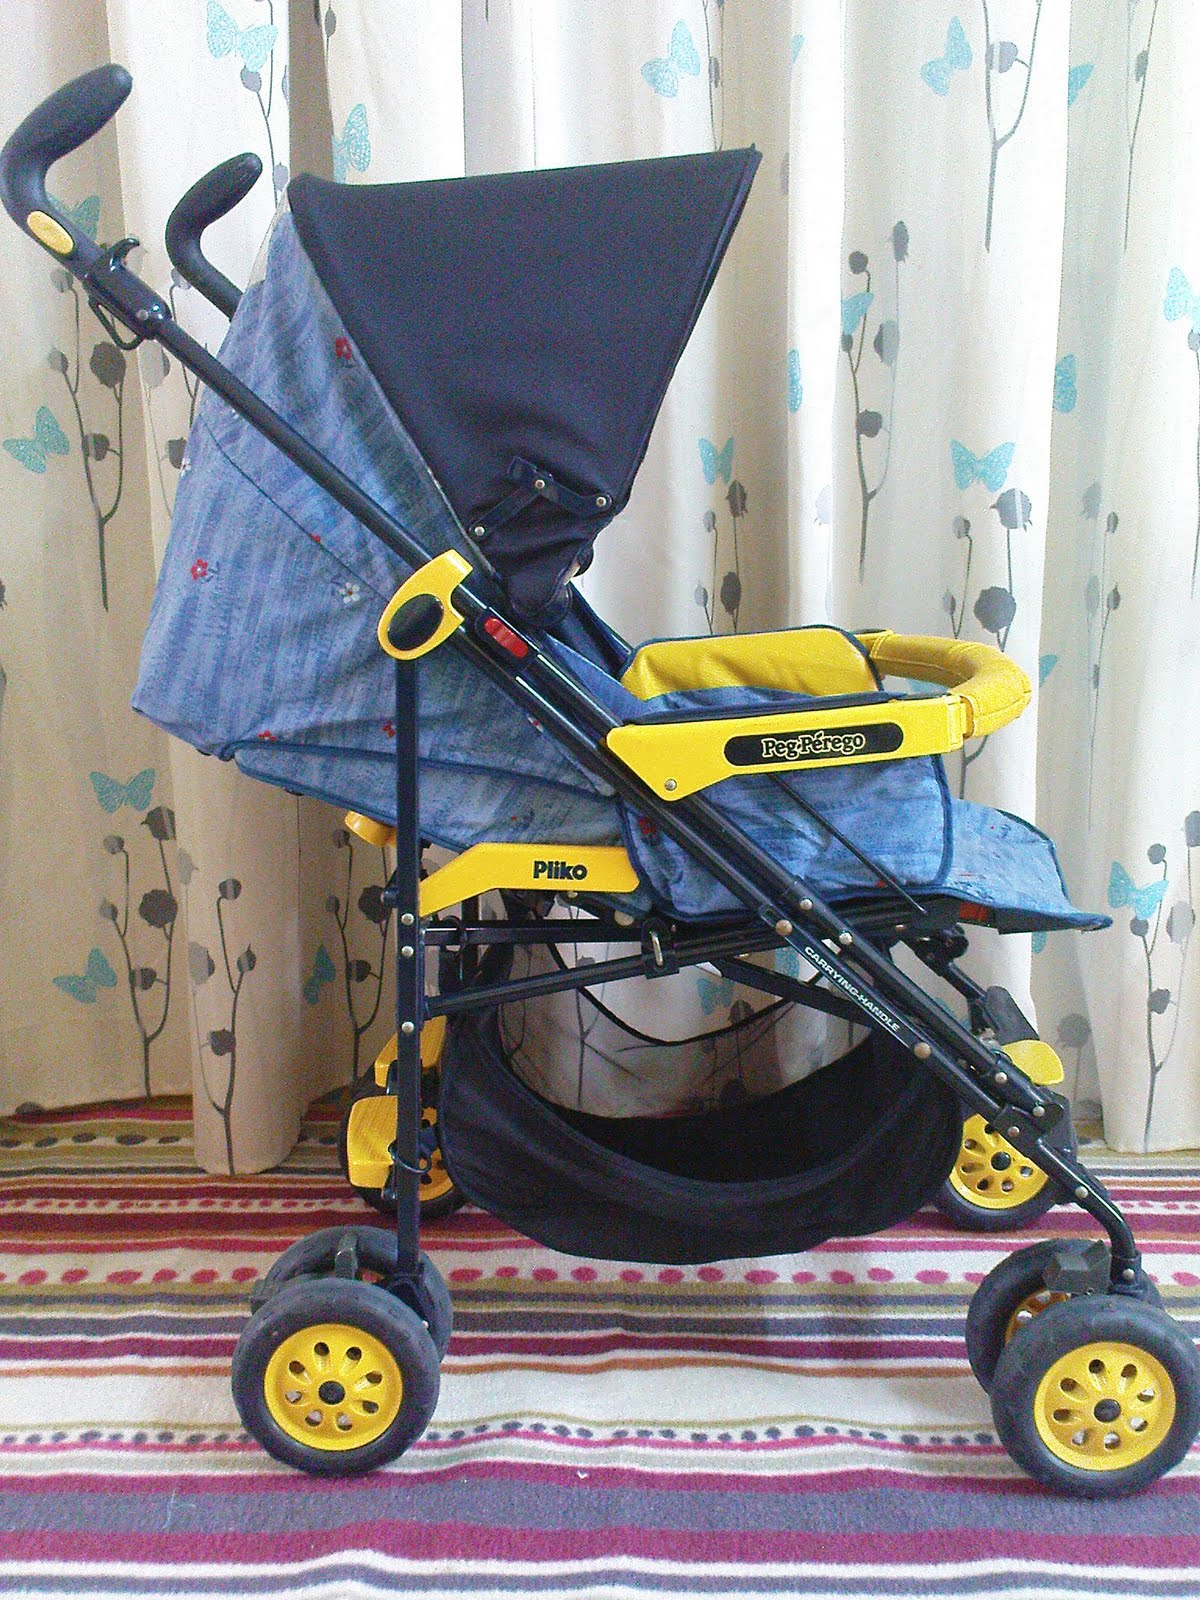 pliko pramette peg perego instructions